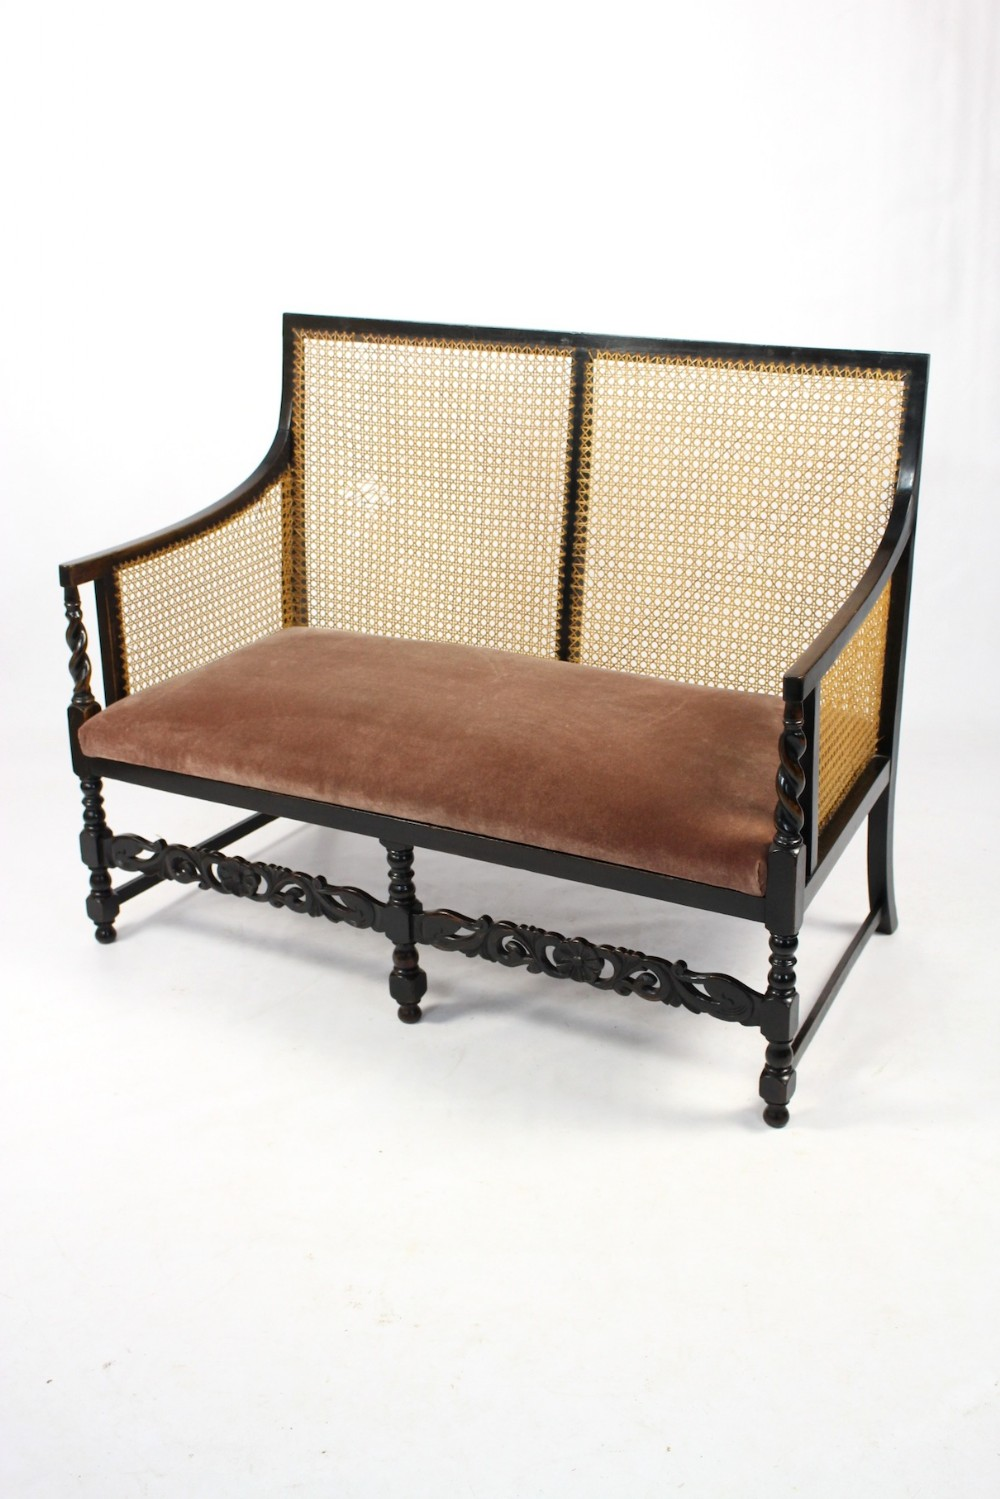 Antique Edwardian Ebonised Beech Bergere Cane Sofa Settee Seat 340942